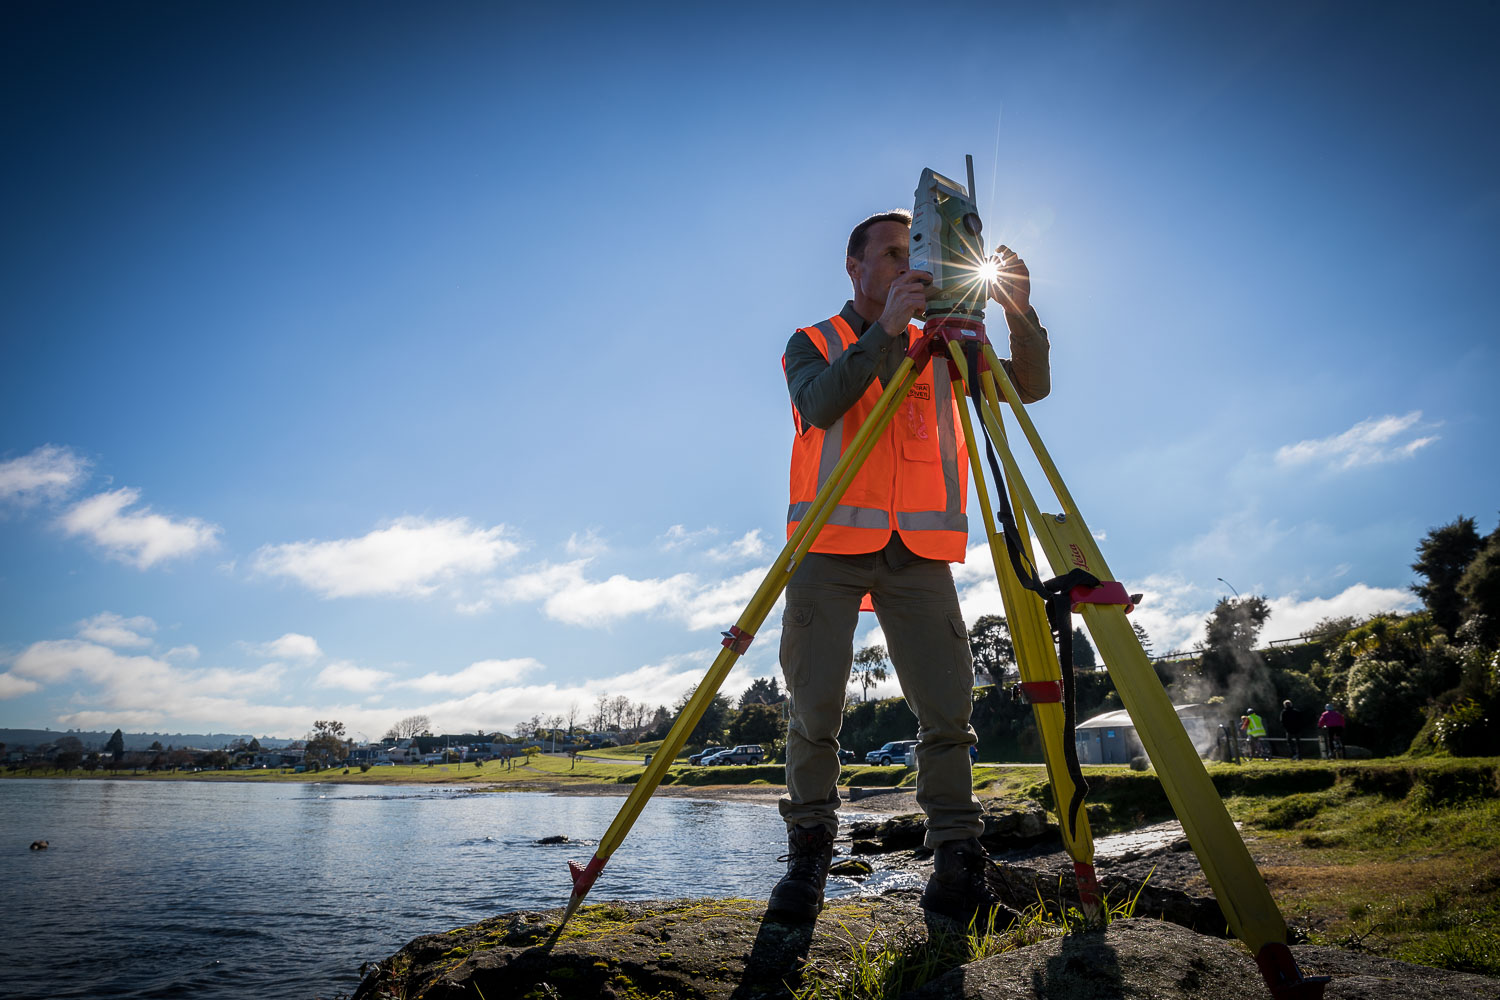 02. Surveying - Speed is good, but accuracy is essential – that's our surveying philosophy. Our professional surveyors are fast and efficient, but they also know the critical importance of accuracy.Using the latest technology and equipment, we provide a high standard of surveying services including:– Topographical surveying and site mapping– Land title, Unit title and Stratum Estate Surveys– As-built and Engineering Surveys – Precise Monitoring Surveys– Hydrographic Surveys– Aerial Surveys